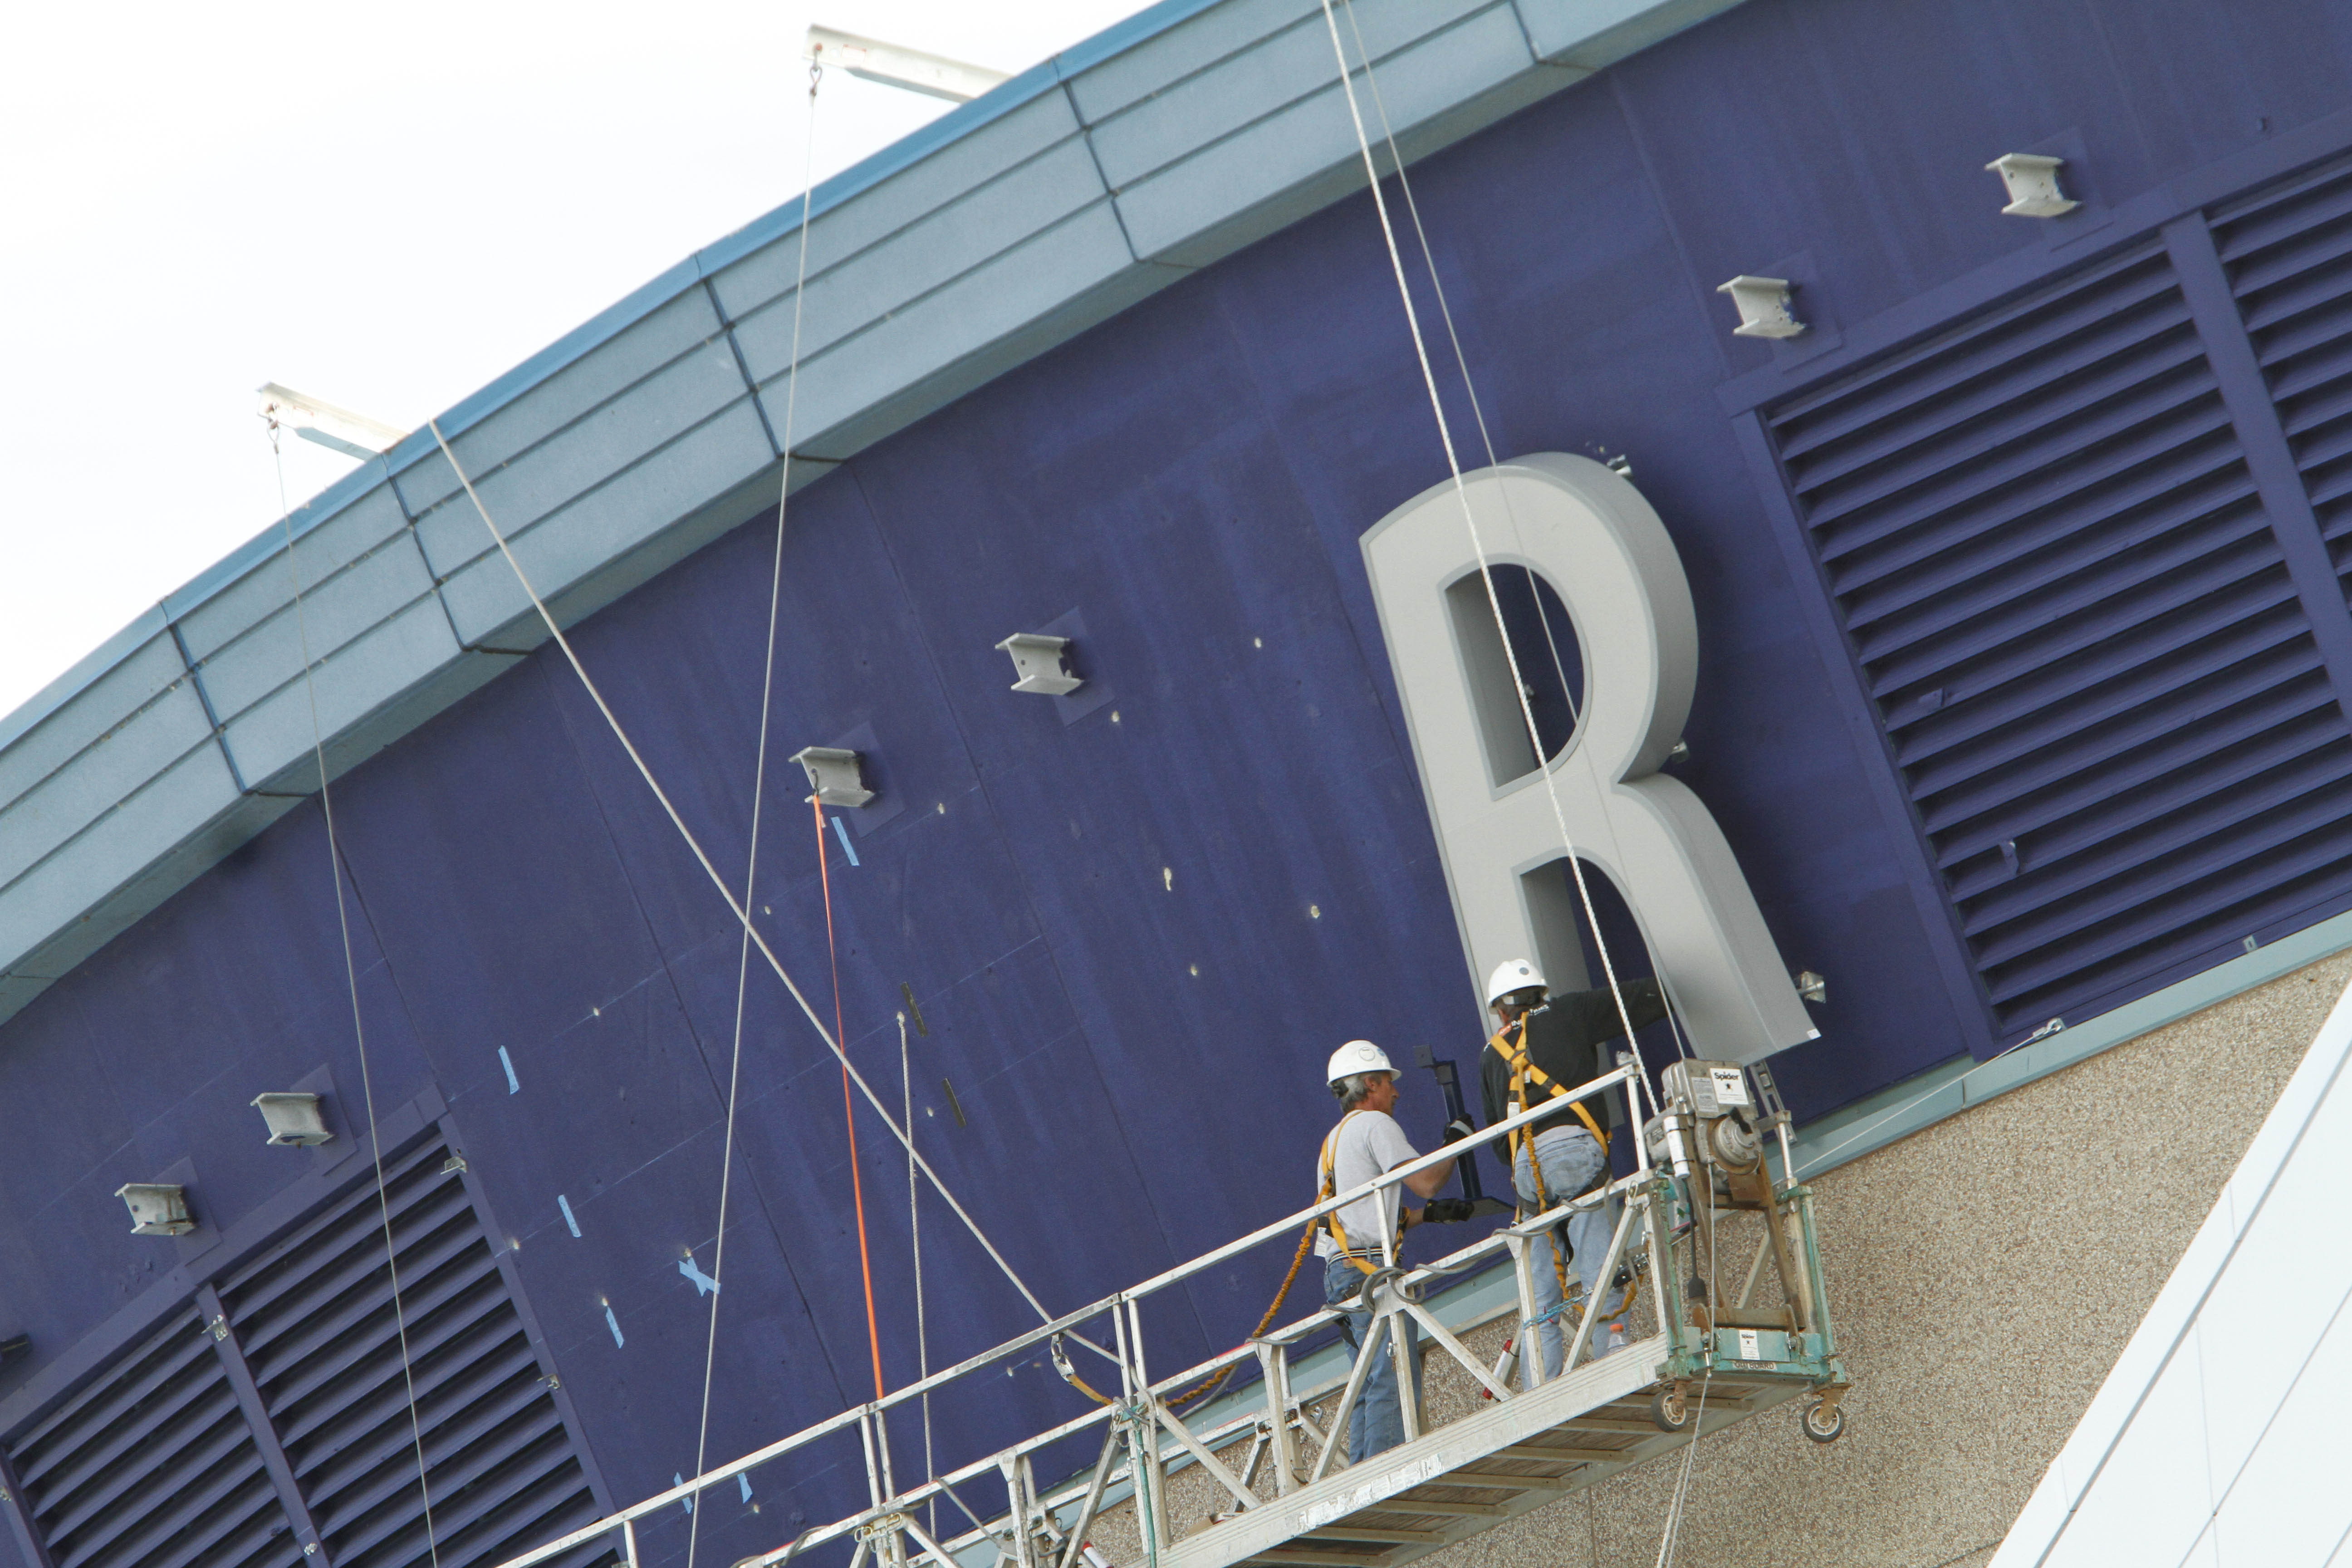 { STAND ALONE / PICTURE PAGE } Workers secure the first letter, an R which has been up since Tuesday, onto the roof of the recently renamed First Niagara Center on Thursday afternoon, Oct. 13, 2011. {Photo by Derek Gee / Buffalo News}